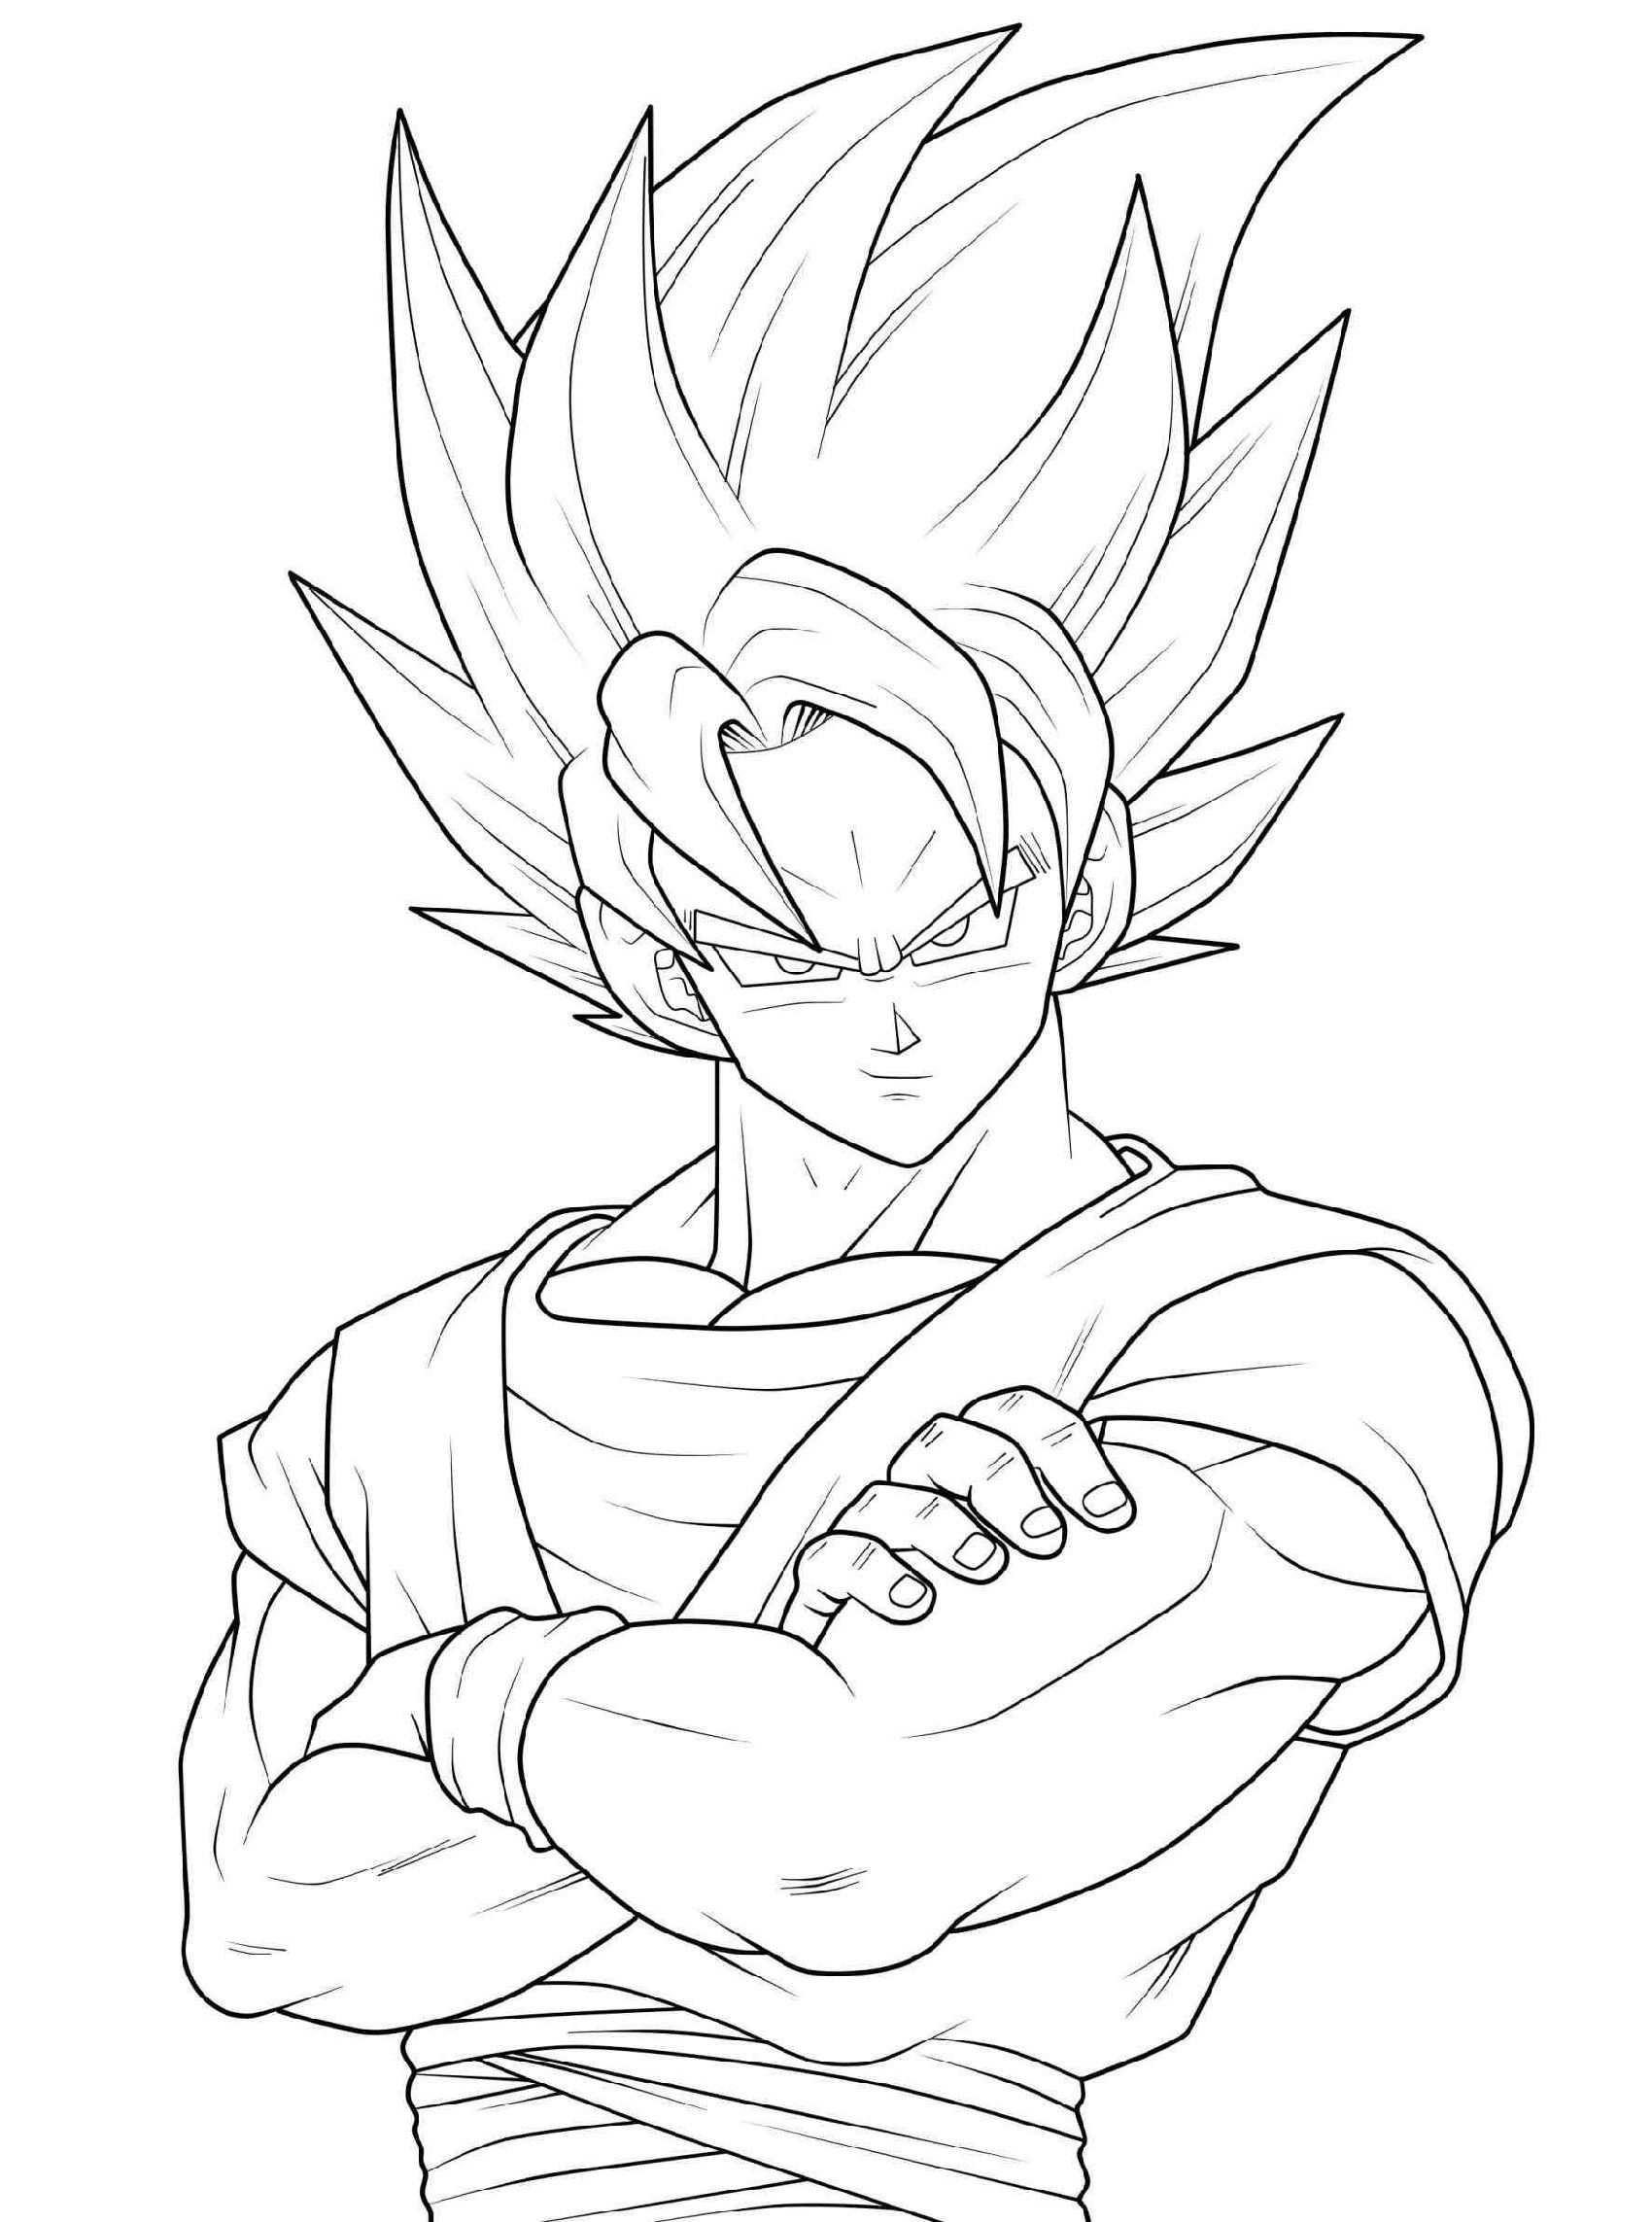 Dragon Ball Super Coloring Pages Goku Educative Printable Dragon Ball Artwork Dragon Coloring Page Super Coloring Pages